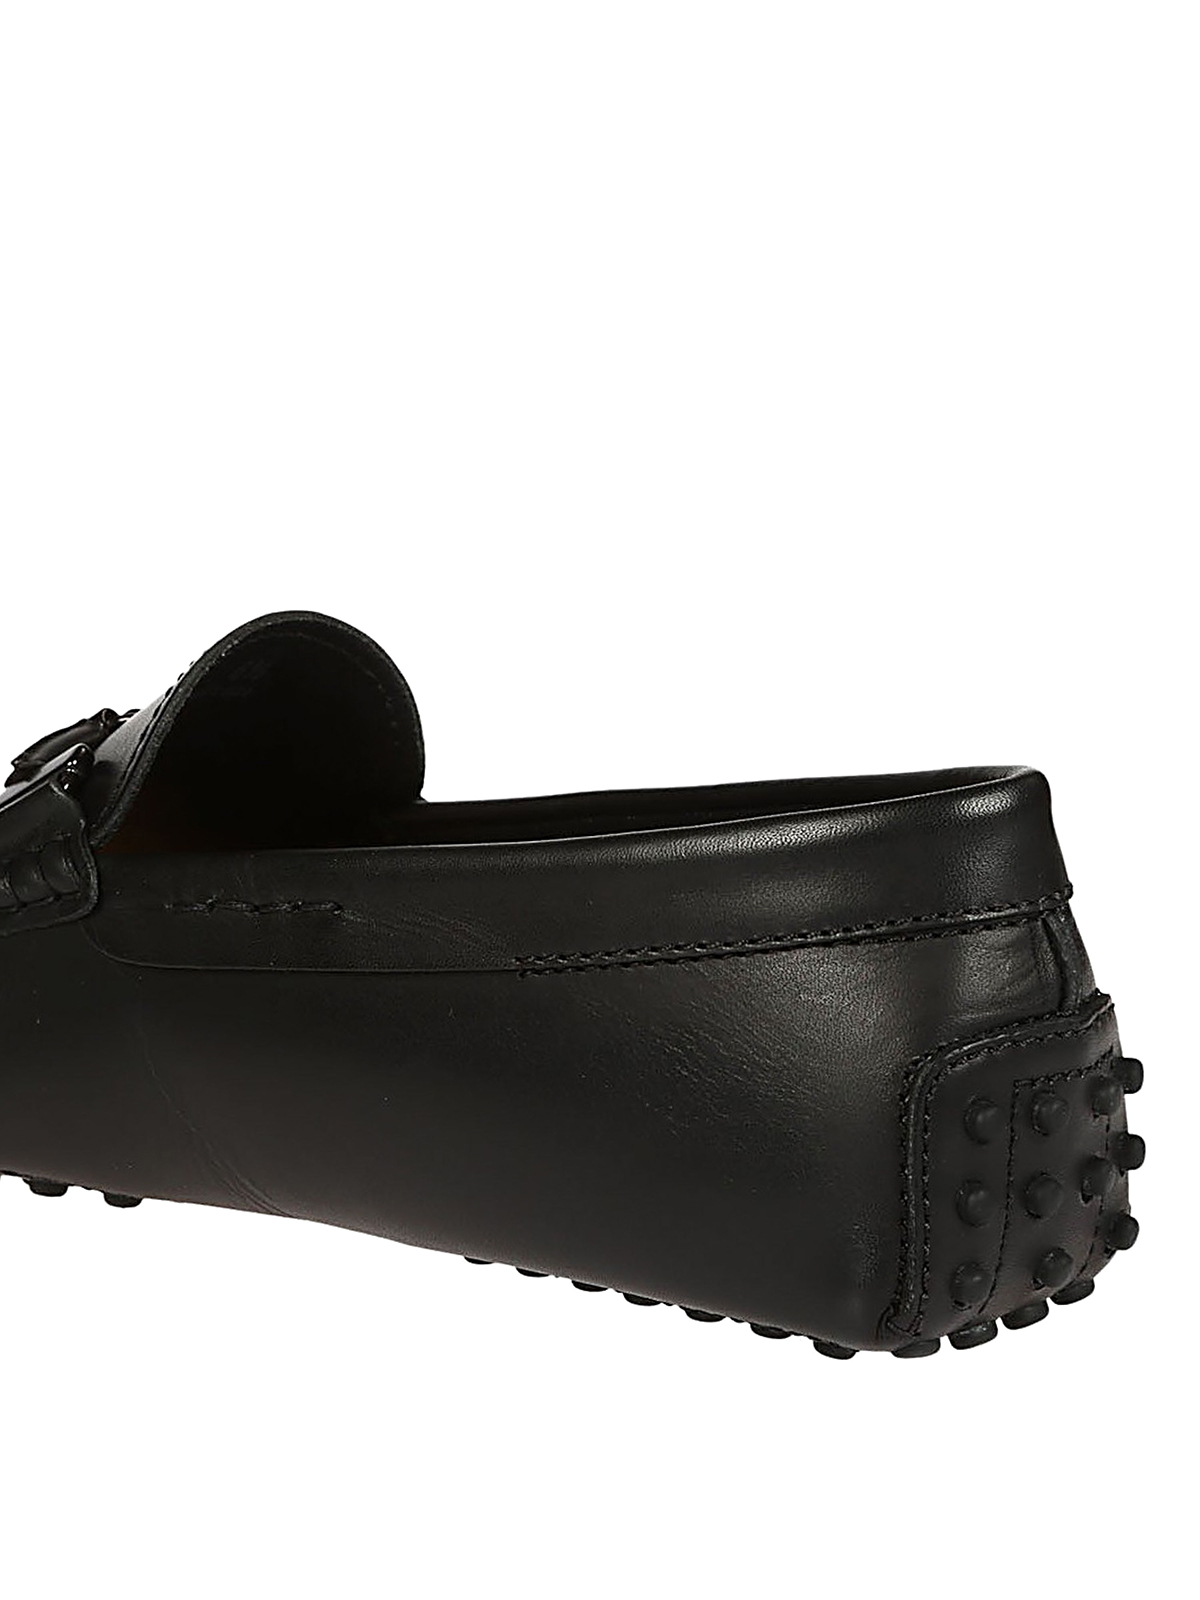 Black leather driver shoes - Loafers